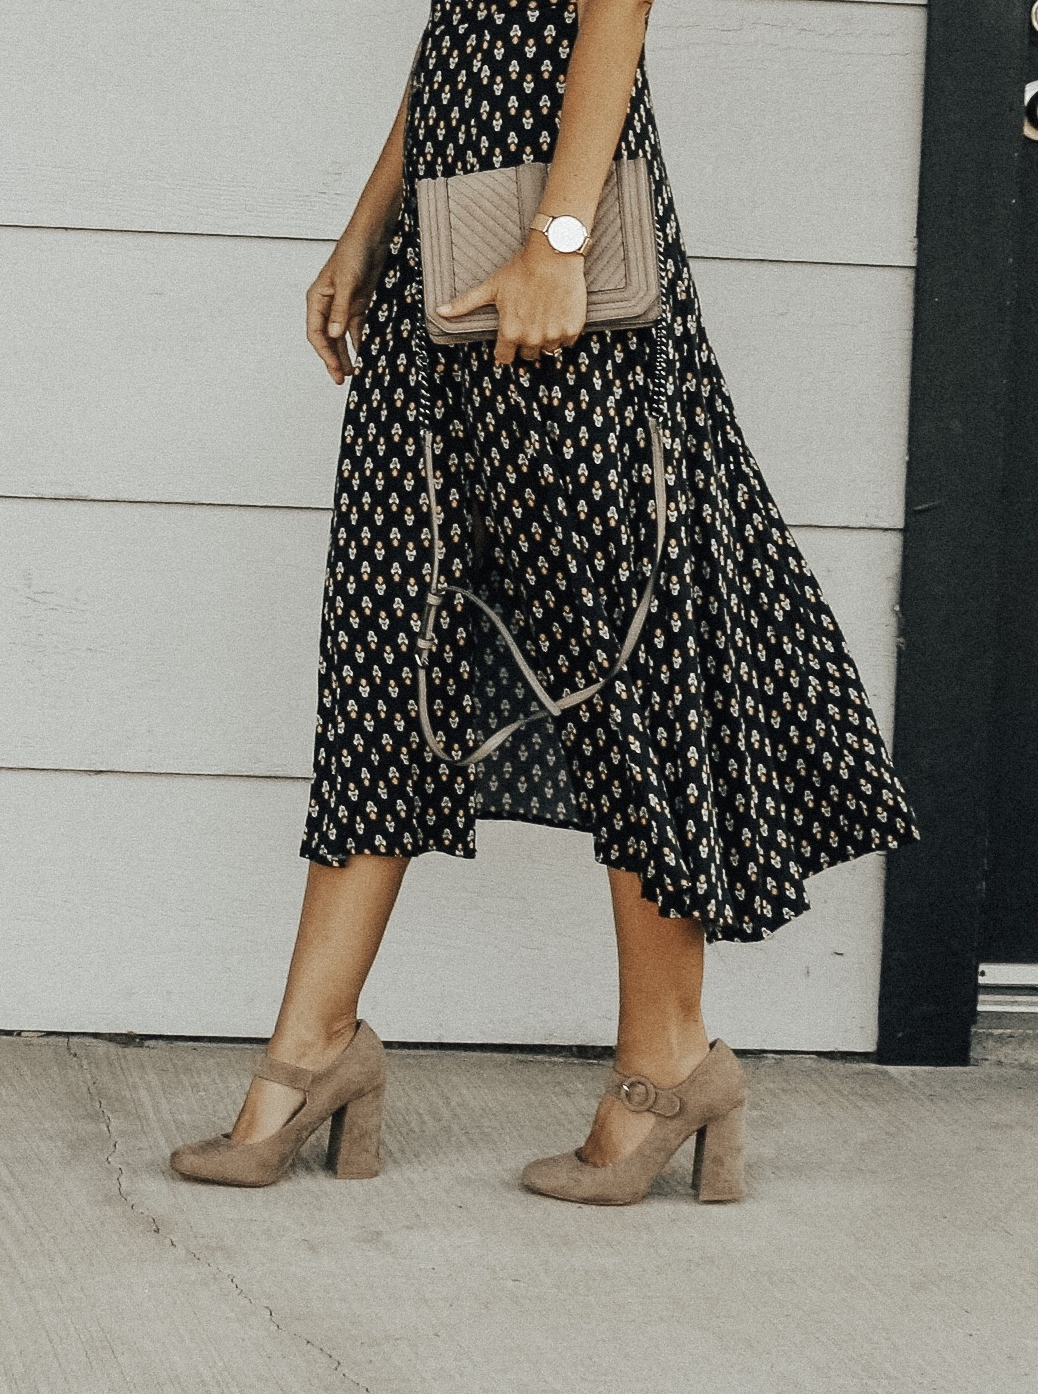 MARY JANE'S ARE BACK + RESTRICTED SHOES- Jaclyn De Leon Style + fall shoe trends + what to wear this season + boho floral midi dress + fall shoe edit + mom style + styling the mary jane shoe + block heel + rebecca minkoff handbag + retro style + 90's fashion